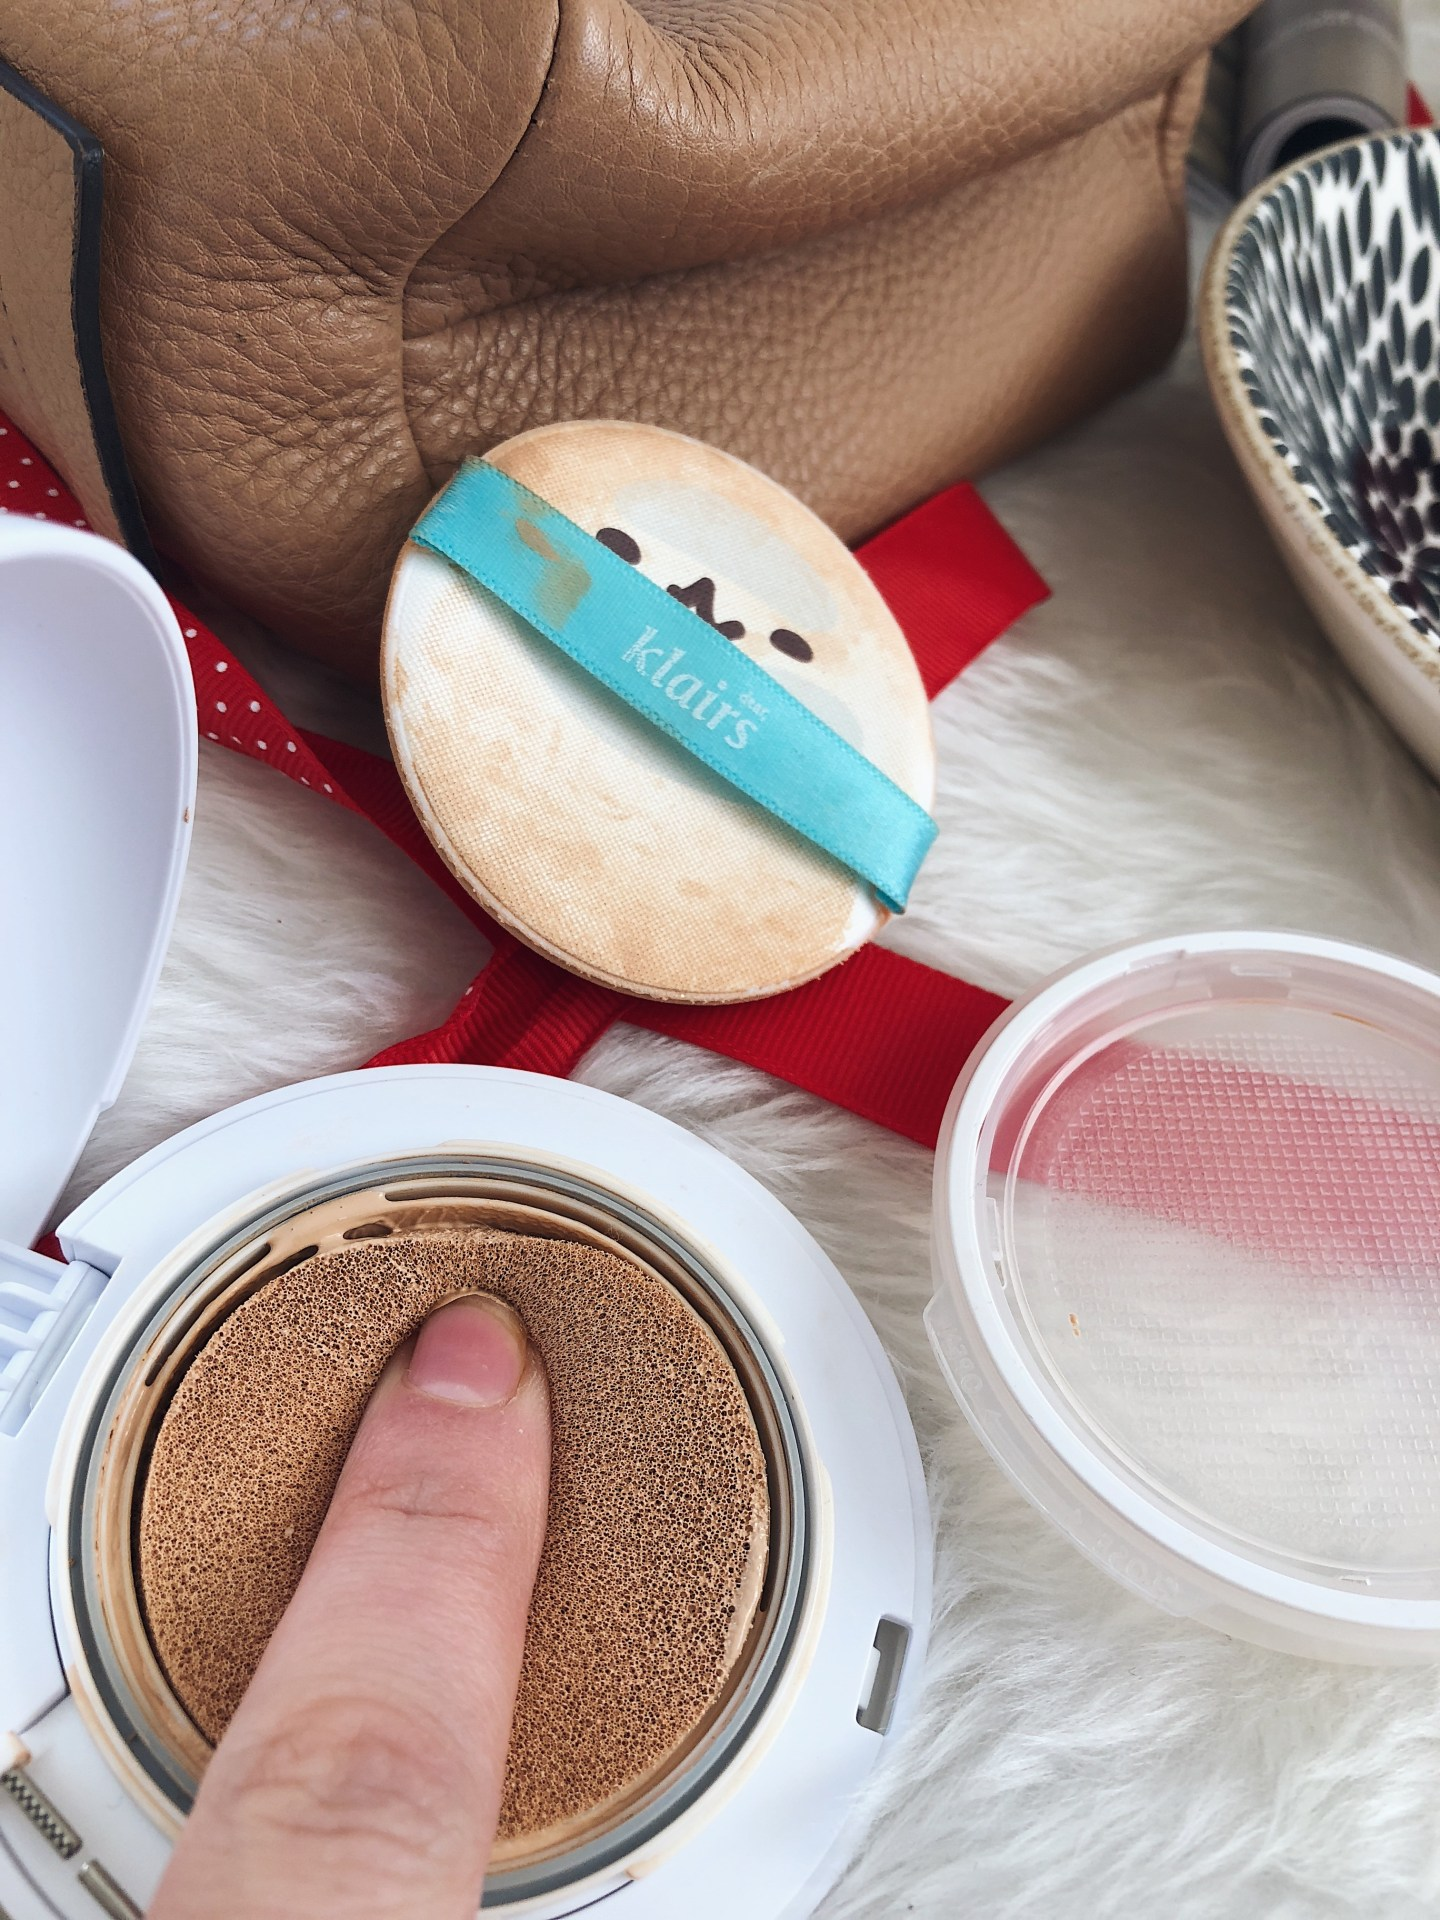 Klairs Mochi BB Cushion Review - Brooke Clarke